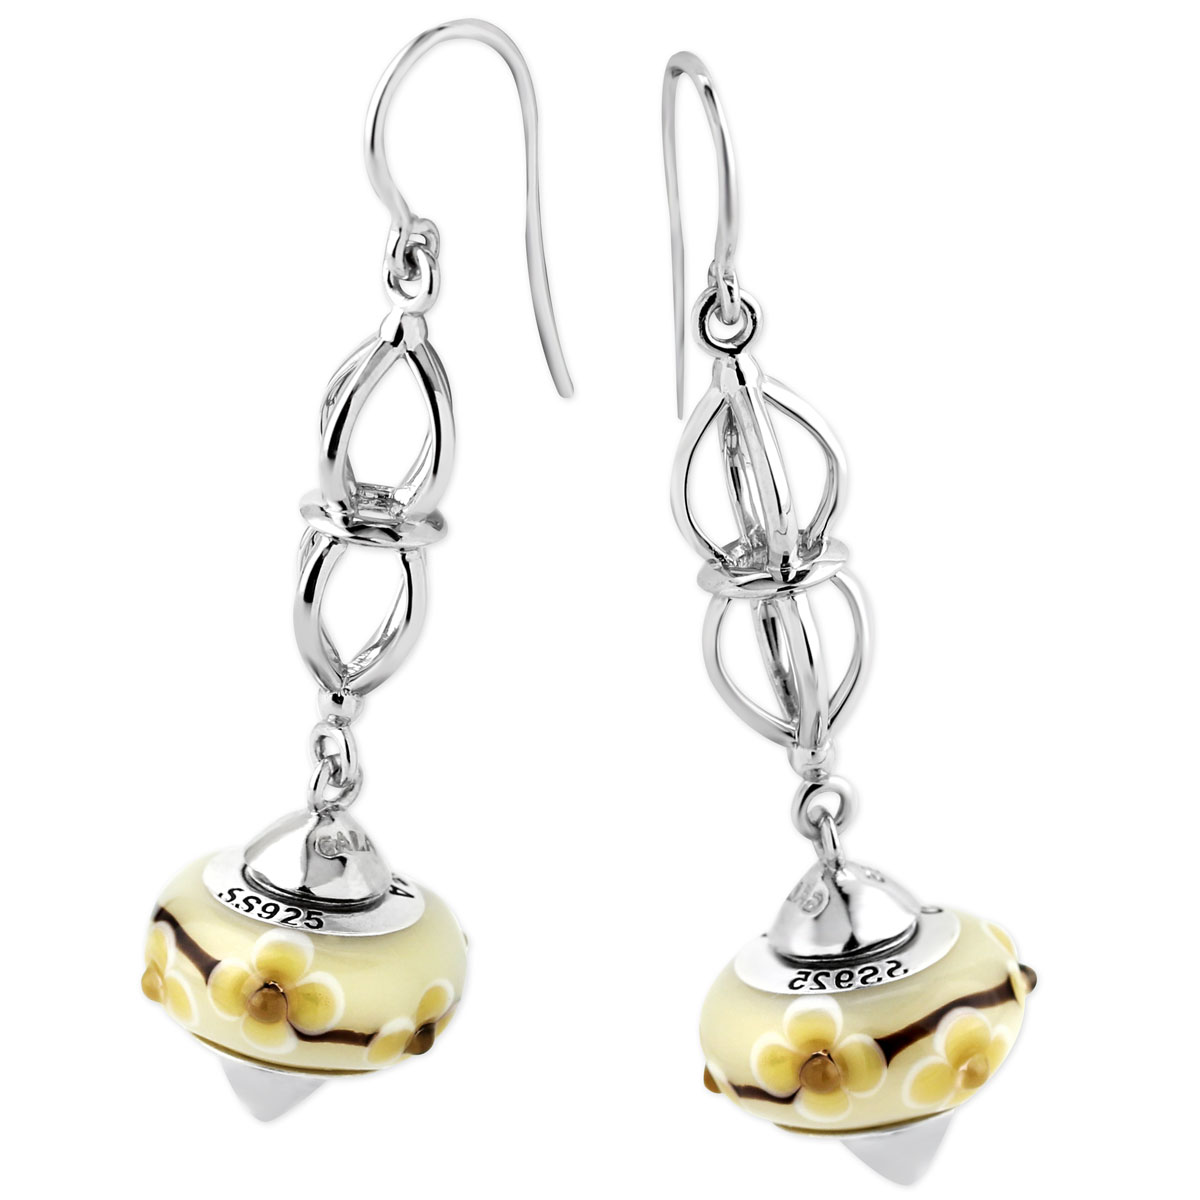 342109-Galatea Interchangeable Earrings with Yellow Flower Beads